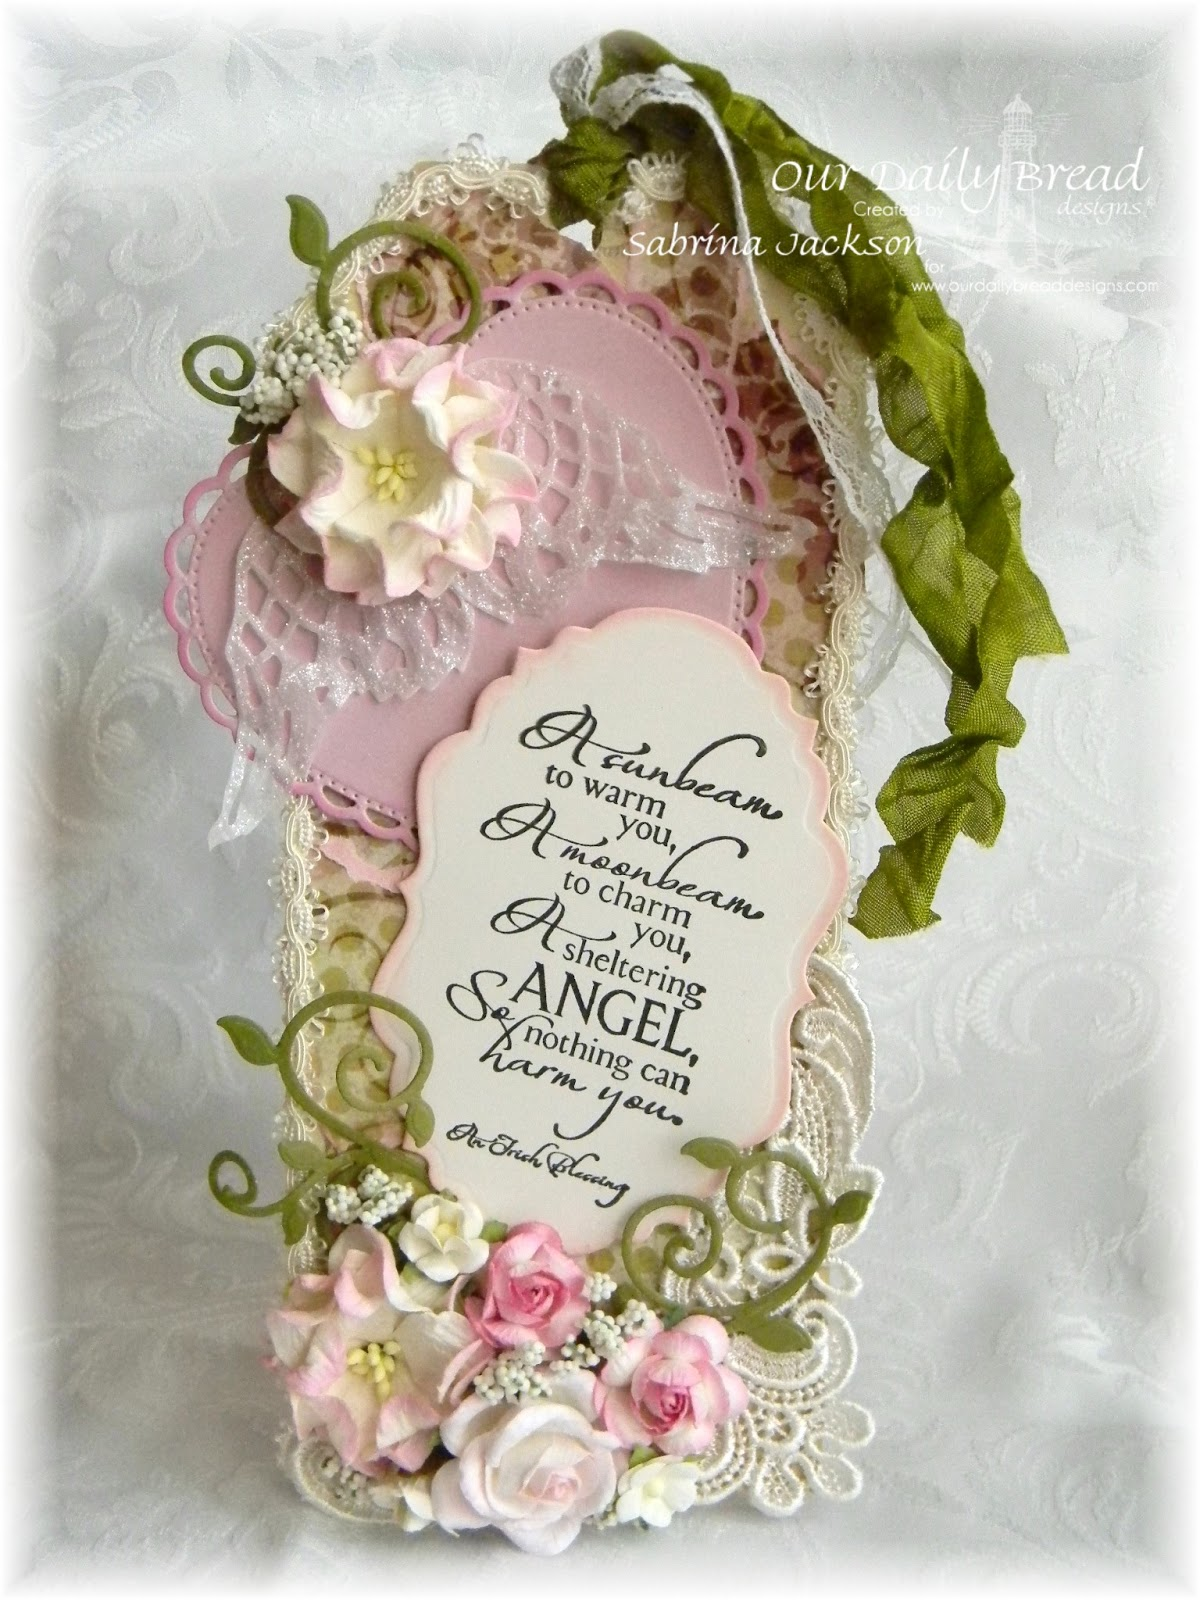 Stamps - Our Daily Bread Designs Sheltering Angel, ODBD Custom Vintage Labels Die, ODBD Custom Ornate Hearts Die, ODBD Custom Angel Wings Die, ODBD Custom Fancy Foliage Die, ODBD Rustic Beauty Paper Collection